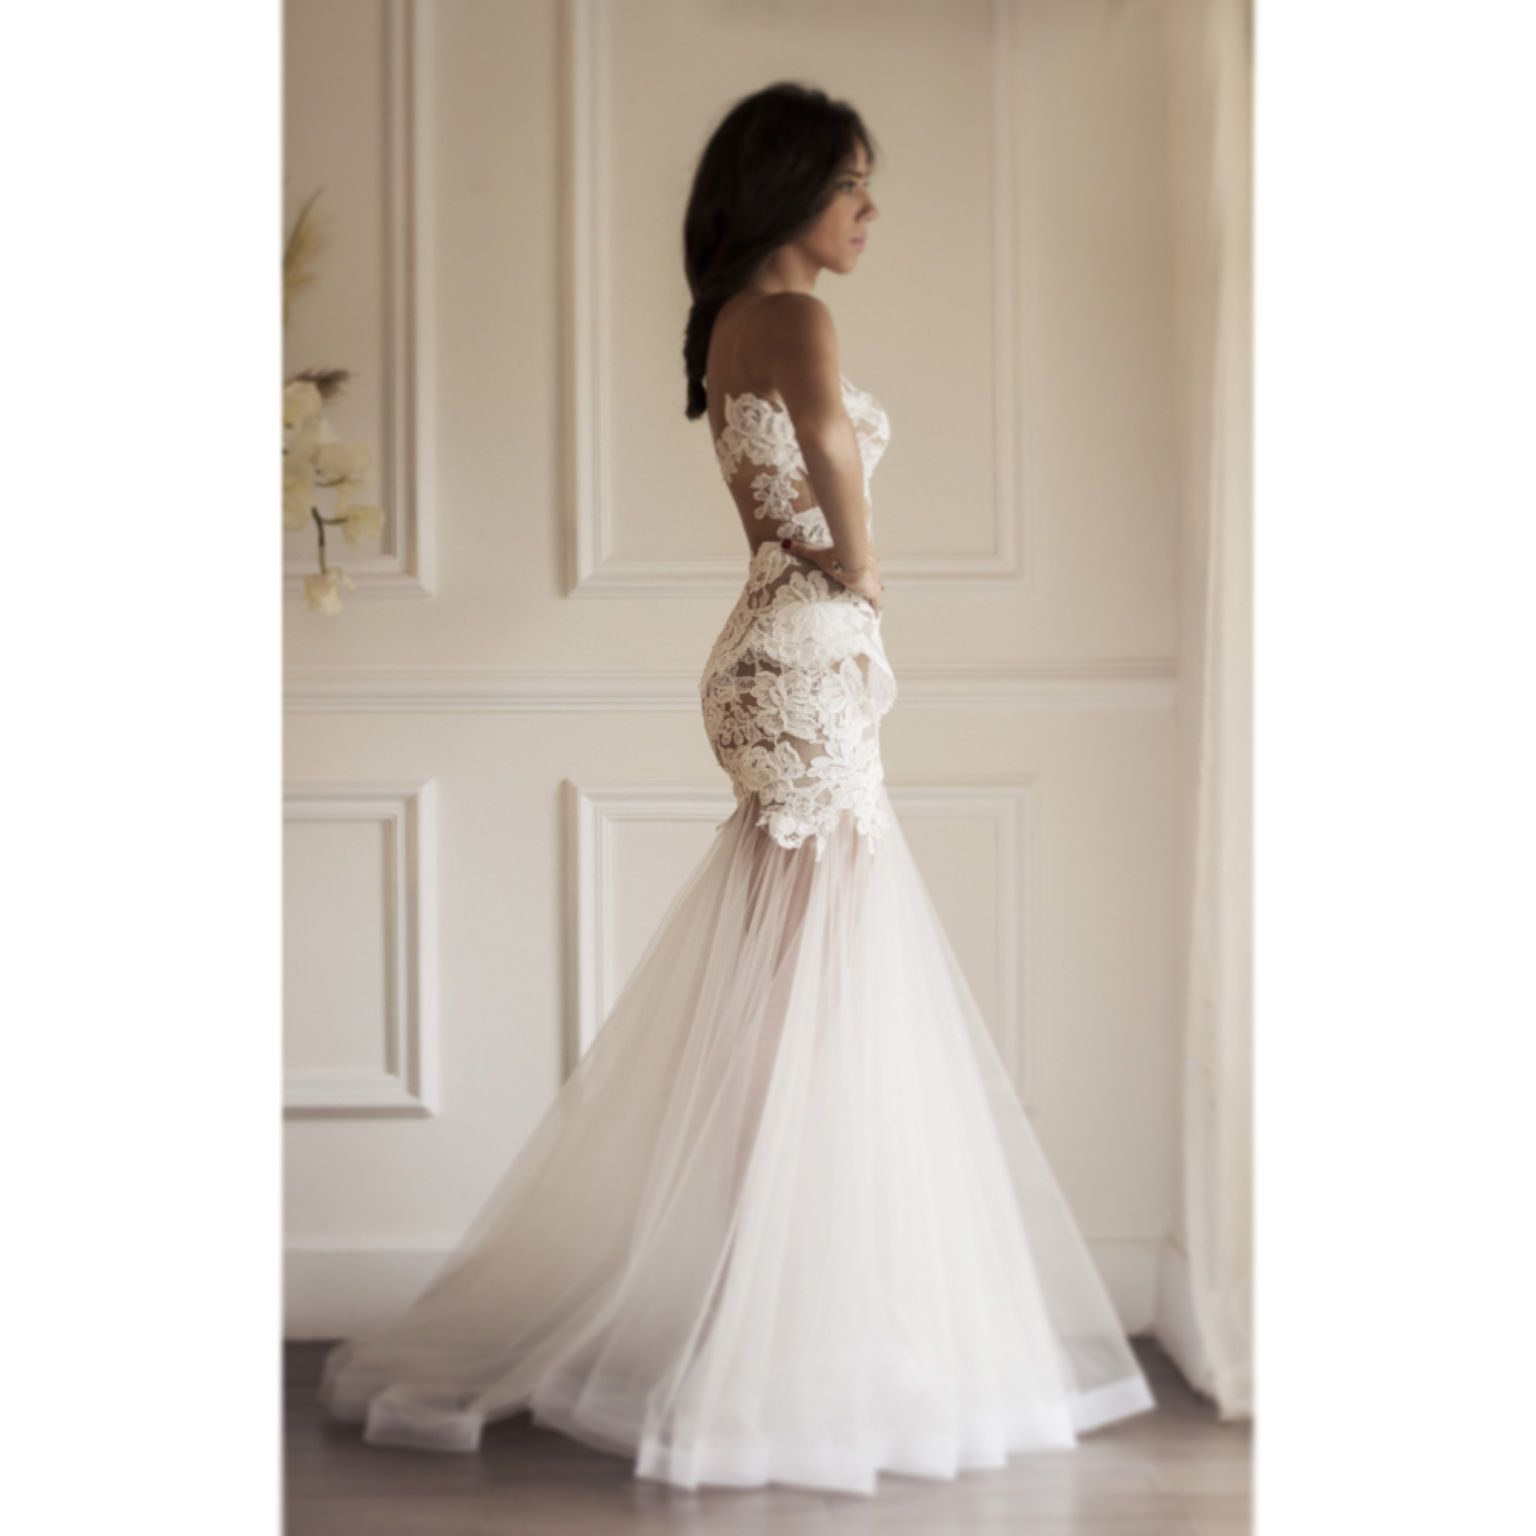 Form Fitting Wedding Gowns: Pin By Michelle Jones On Mz Cinderella Couture Couture